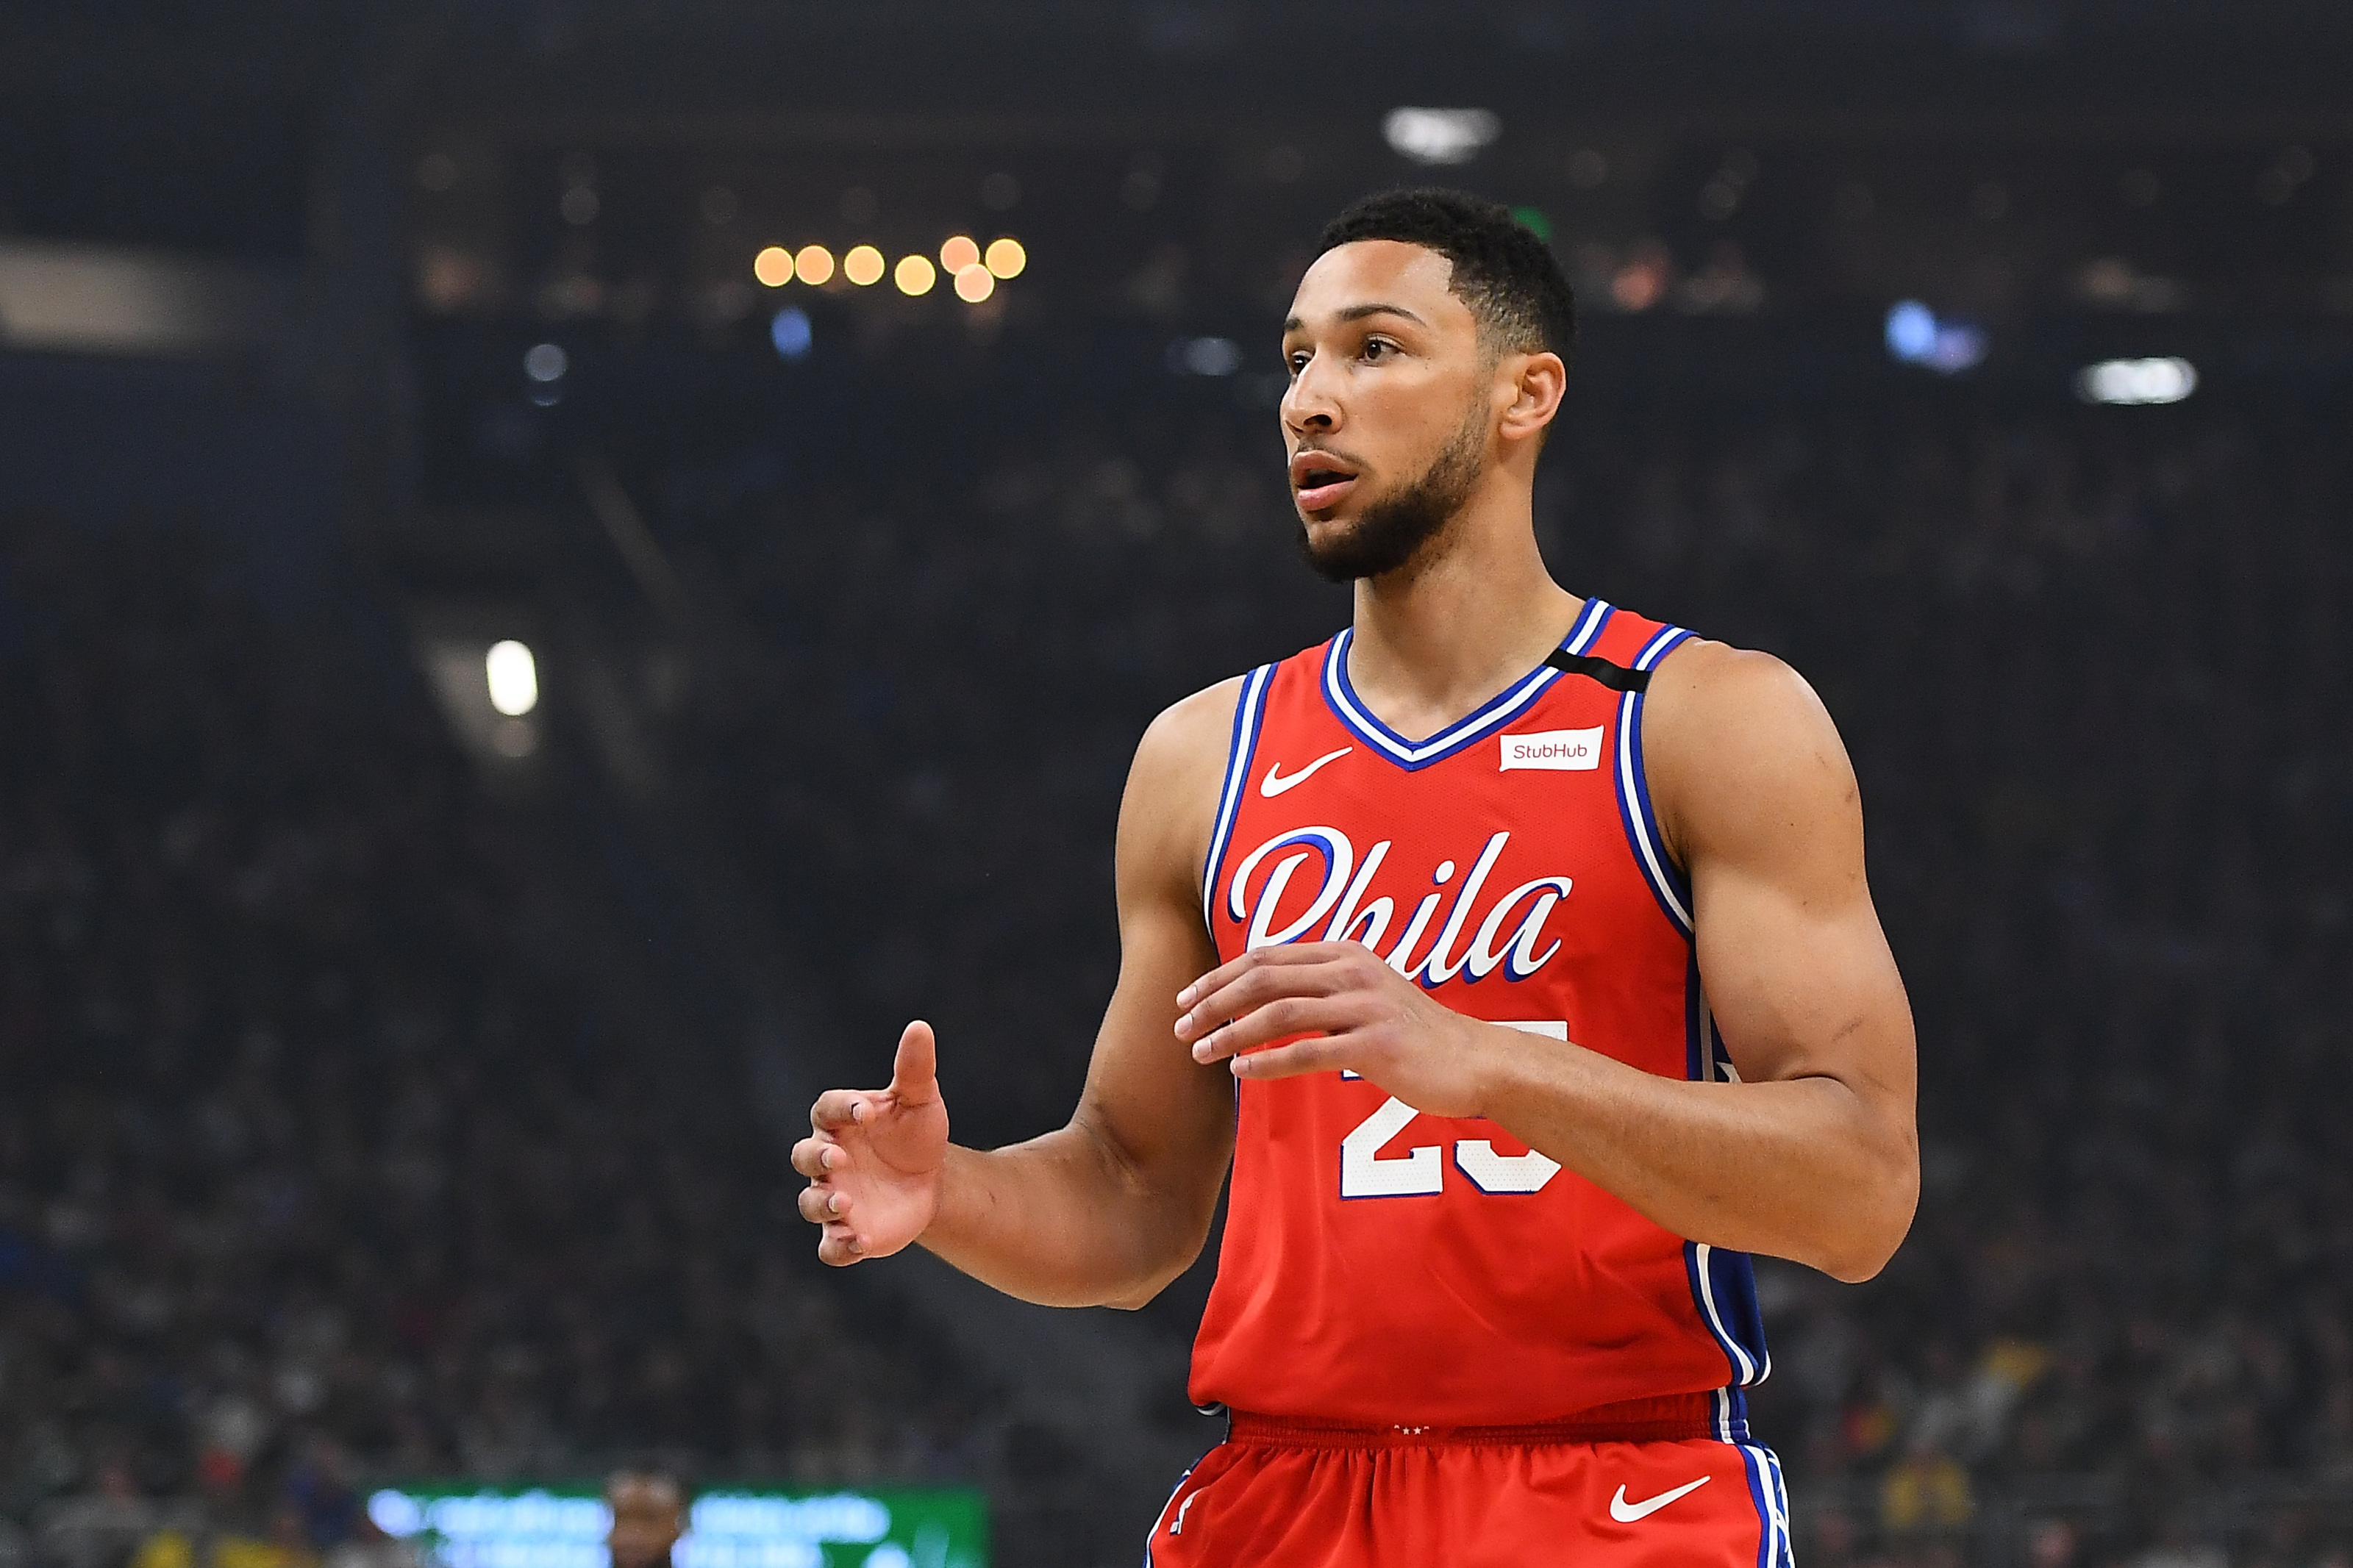 Chicago Bulls: 3 trades with the Sixers for Ben Simmons